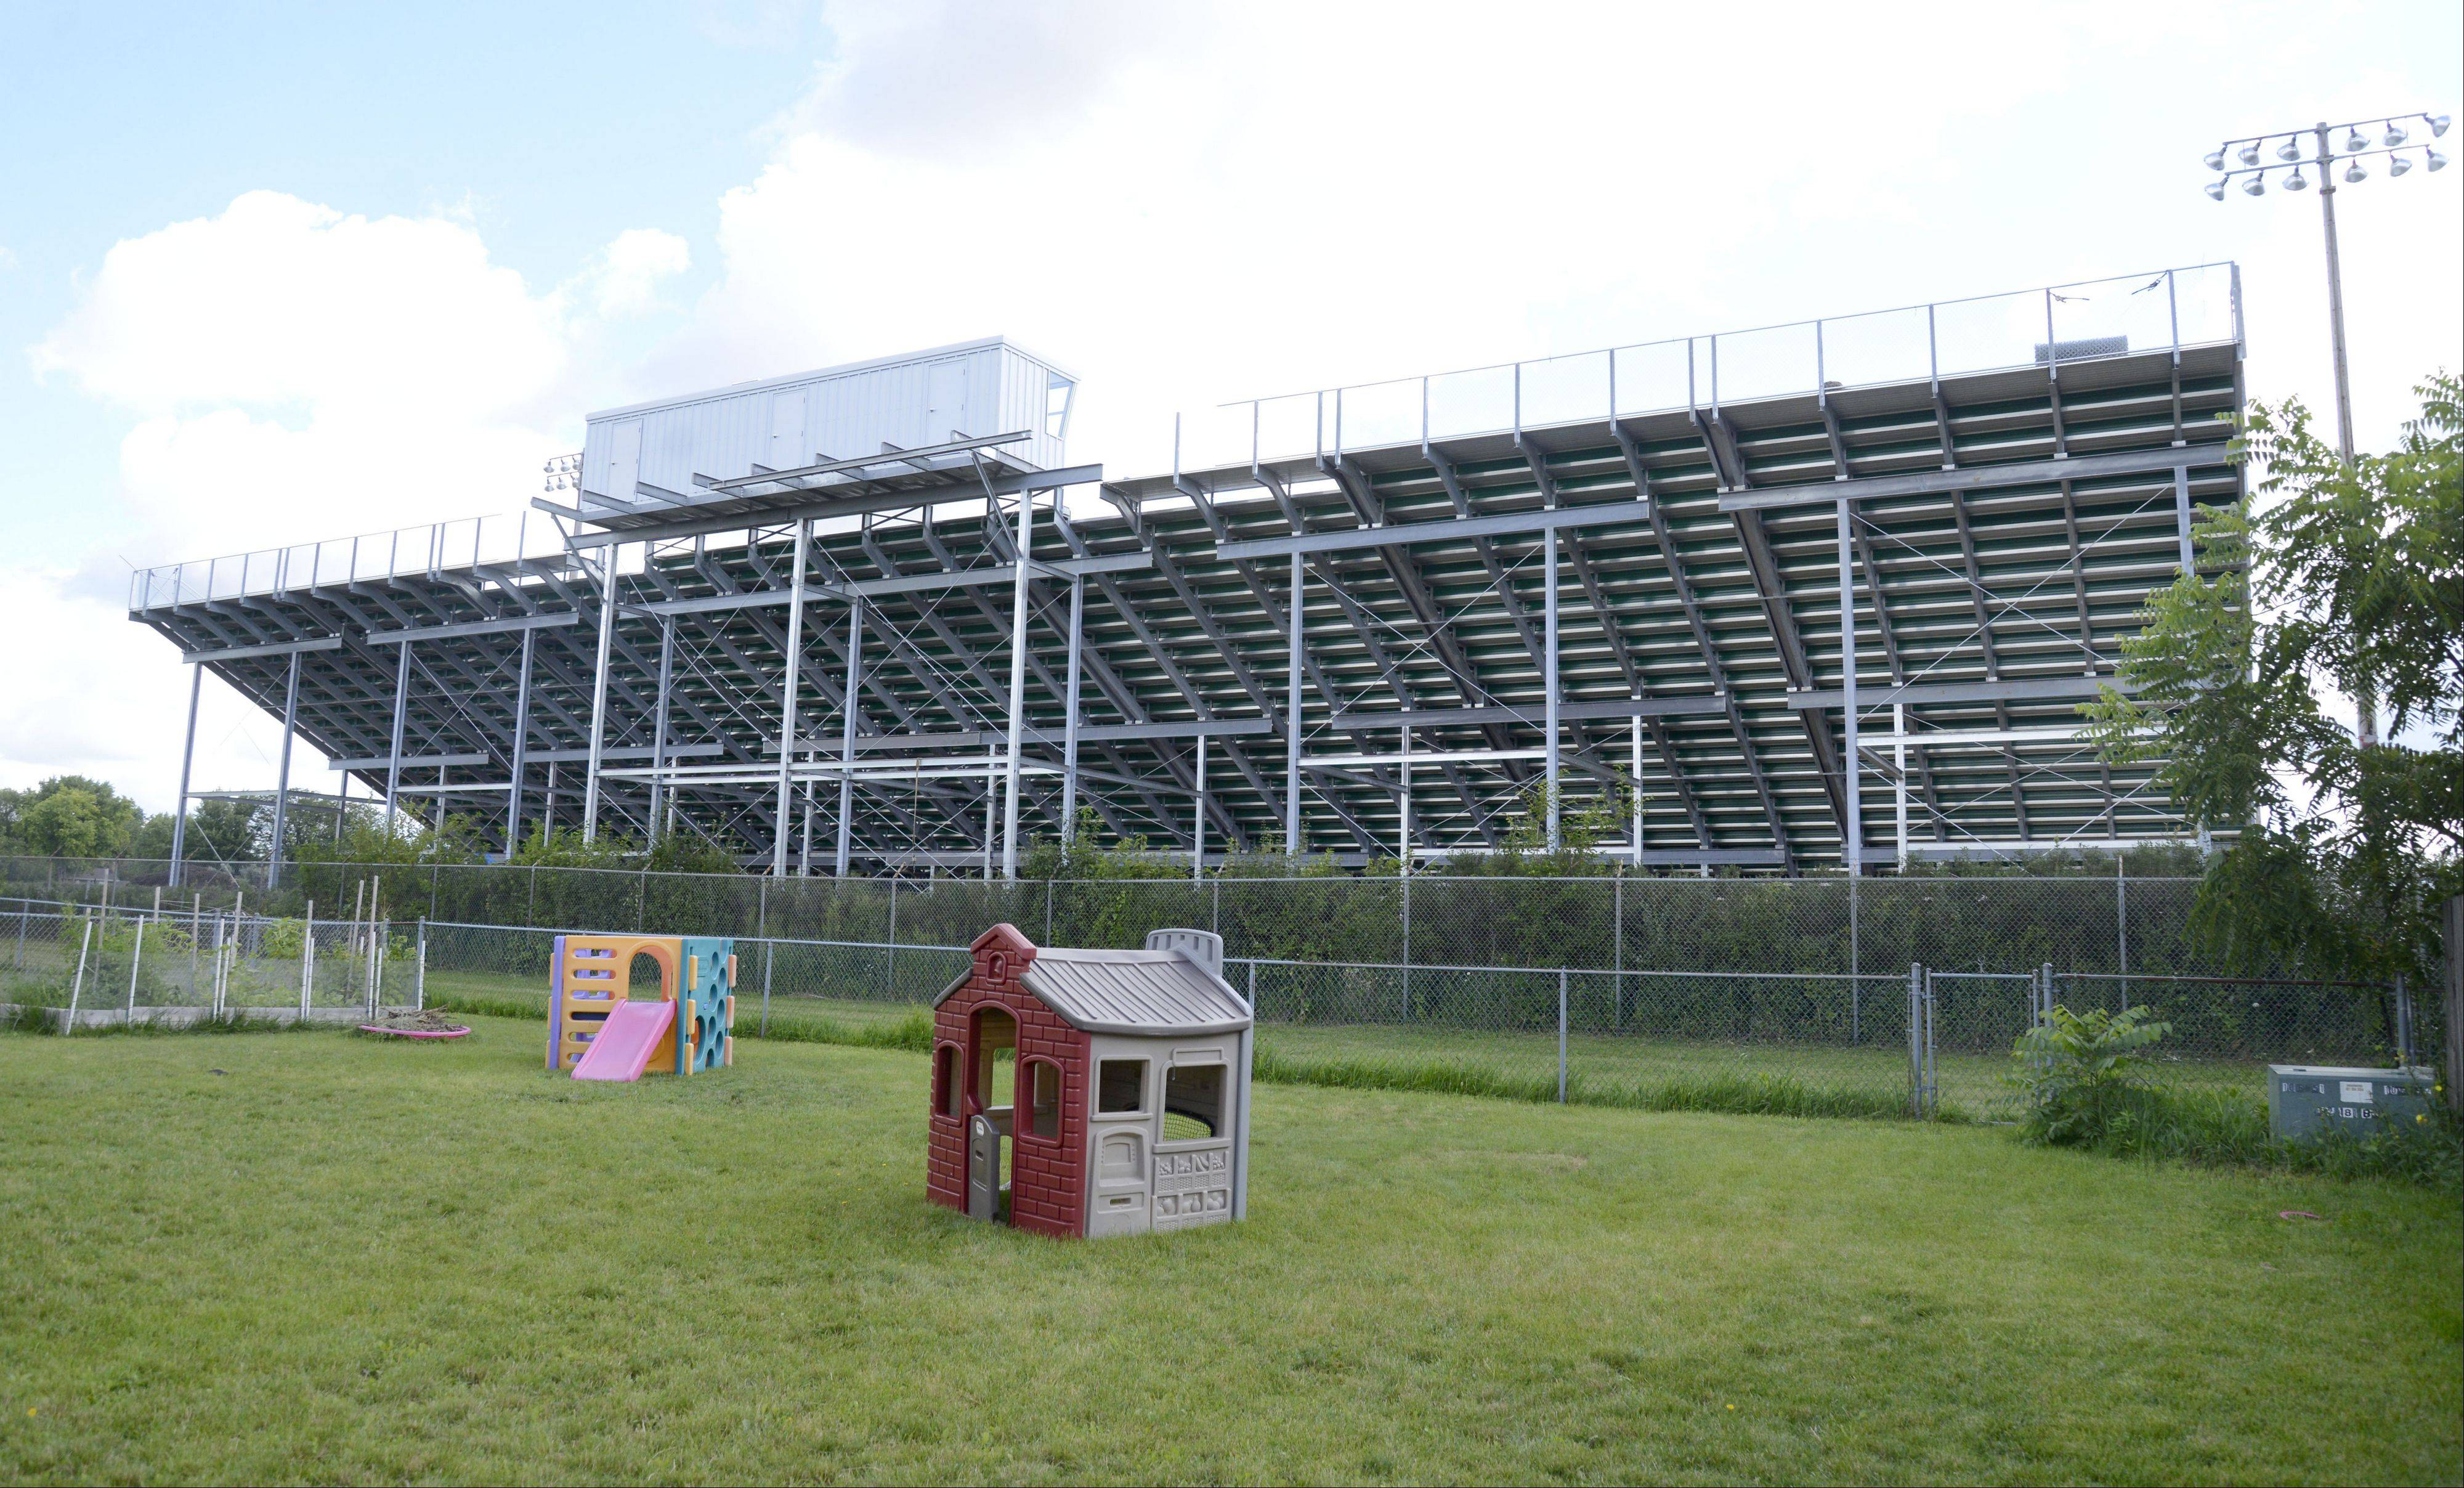 Crystal Lake South High School installed new bleachers this summer, and some residents who live on Amberwood Drive see the stands looming over their backyards, and have sued the district.